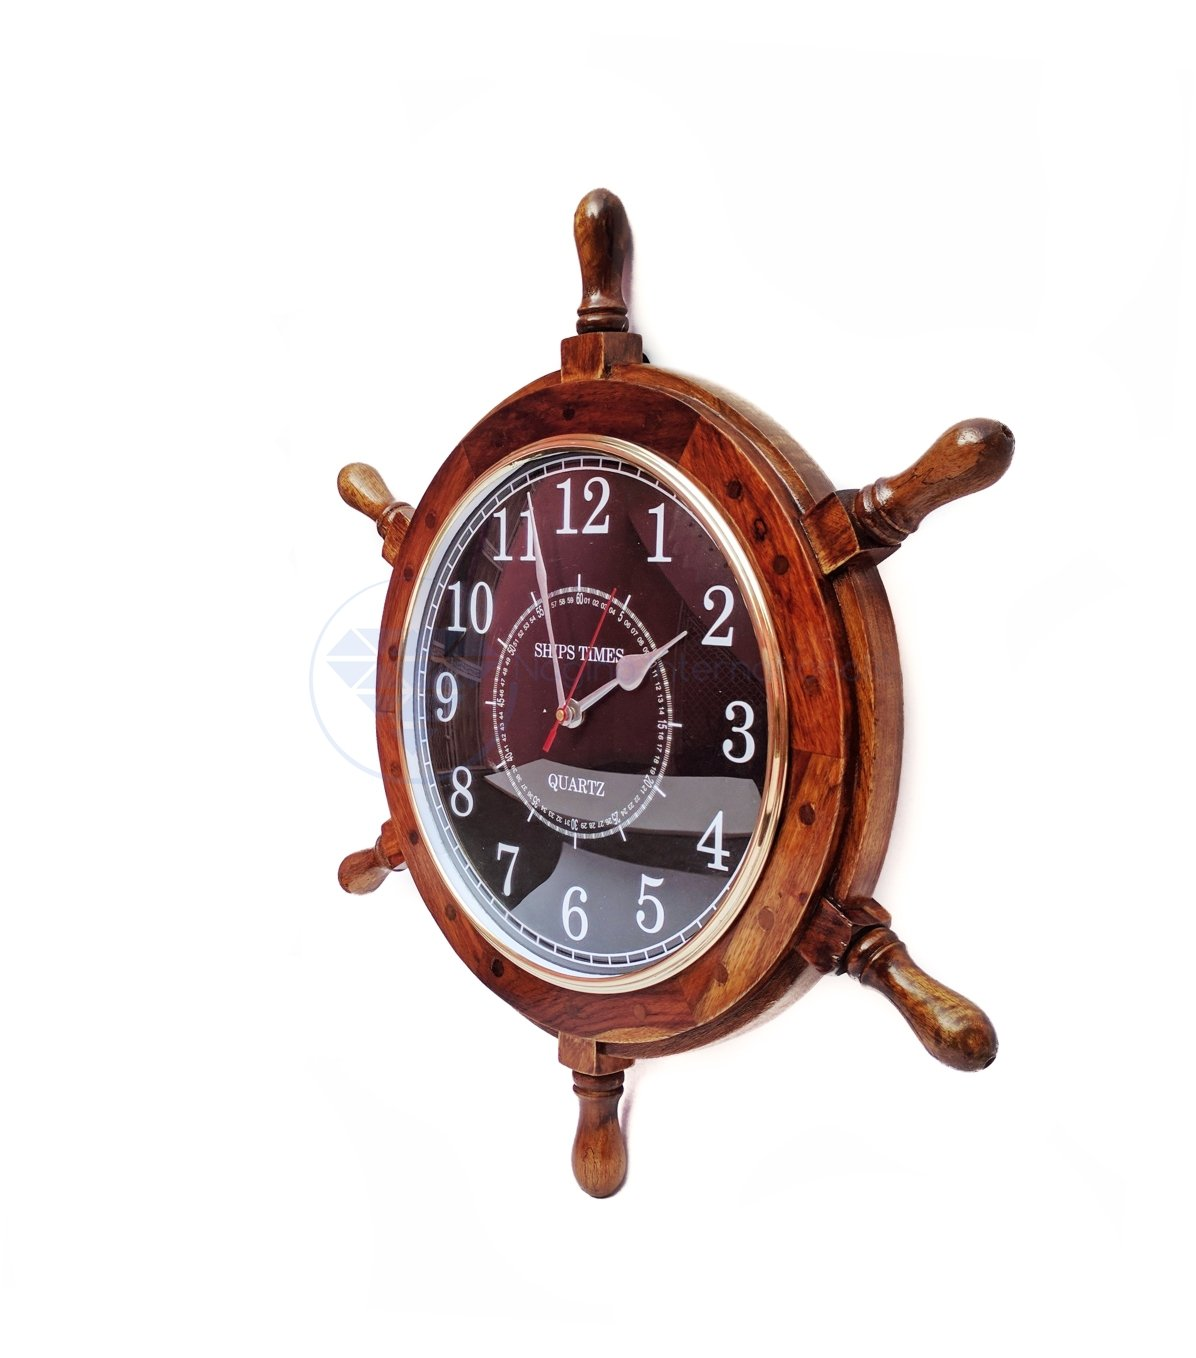 Nagina International Nautical Hand Crafted Wooden Ship Wheel with Quartz Times Wall Clock – Pirate Nursery Home Decor 24 Inches, Black Dial Face